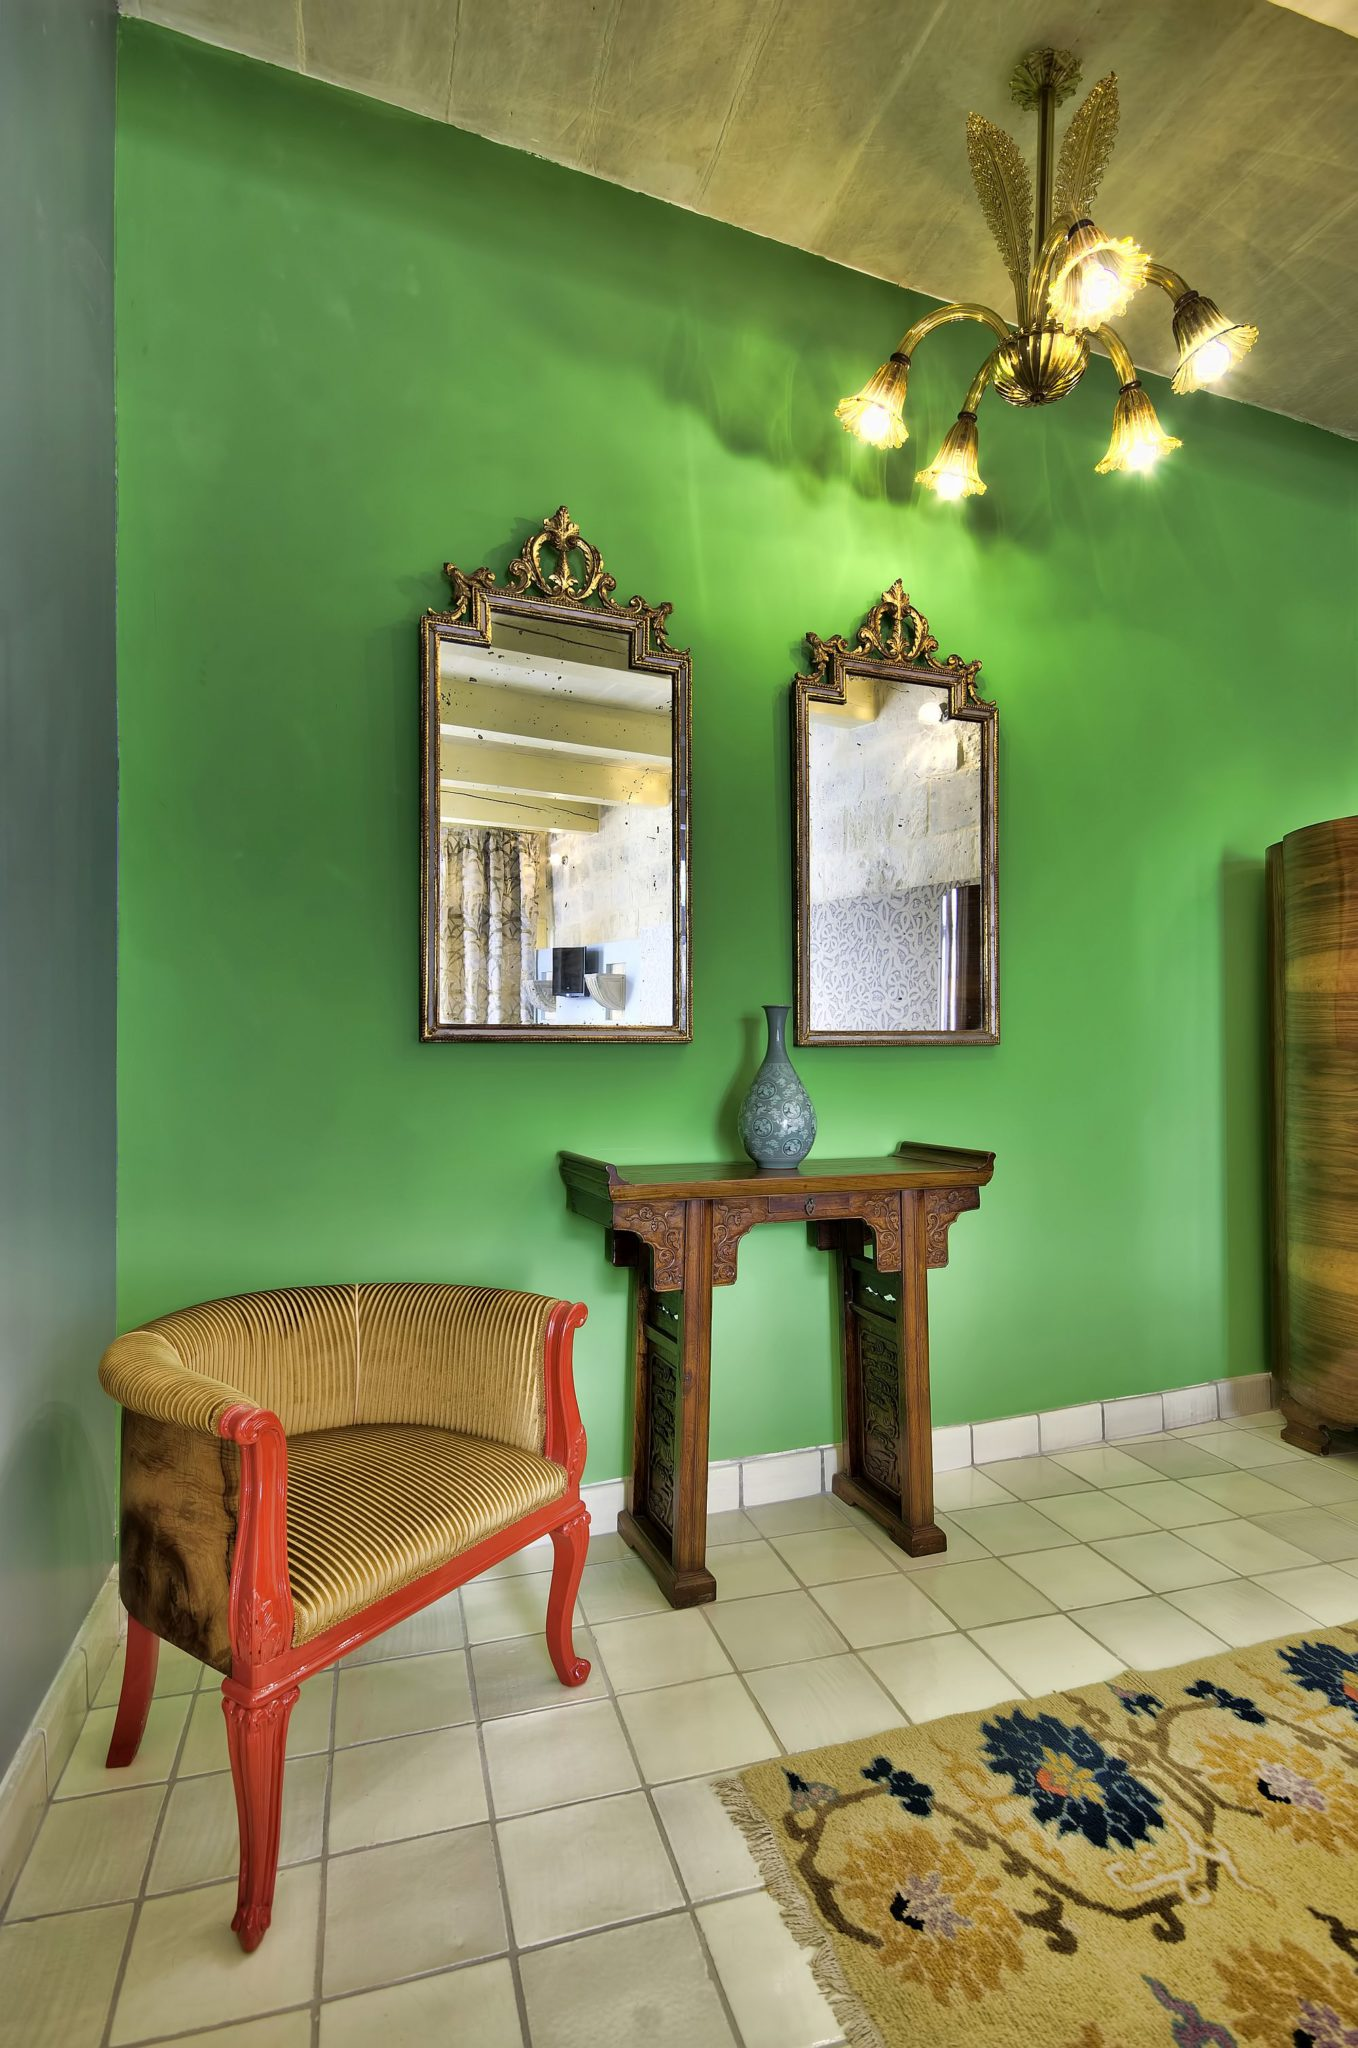 Splashes of bright green bring Mediterranean magic into the lovely hotel